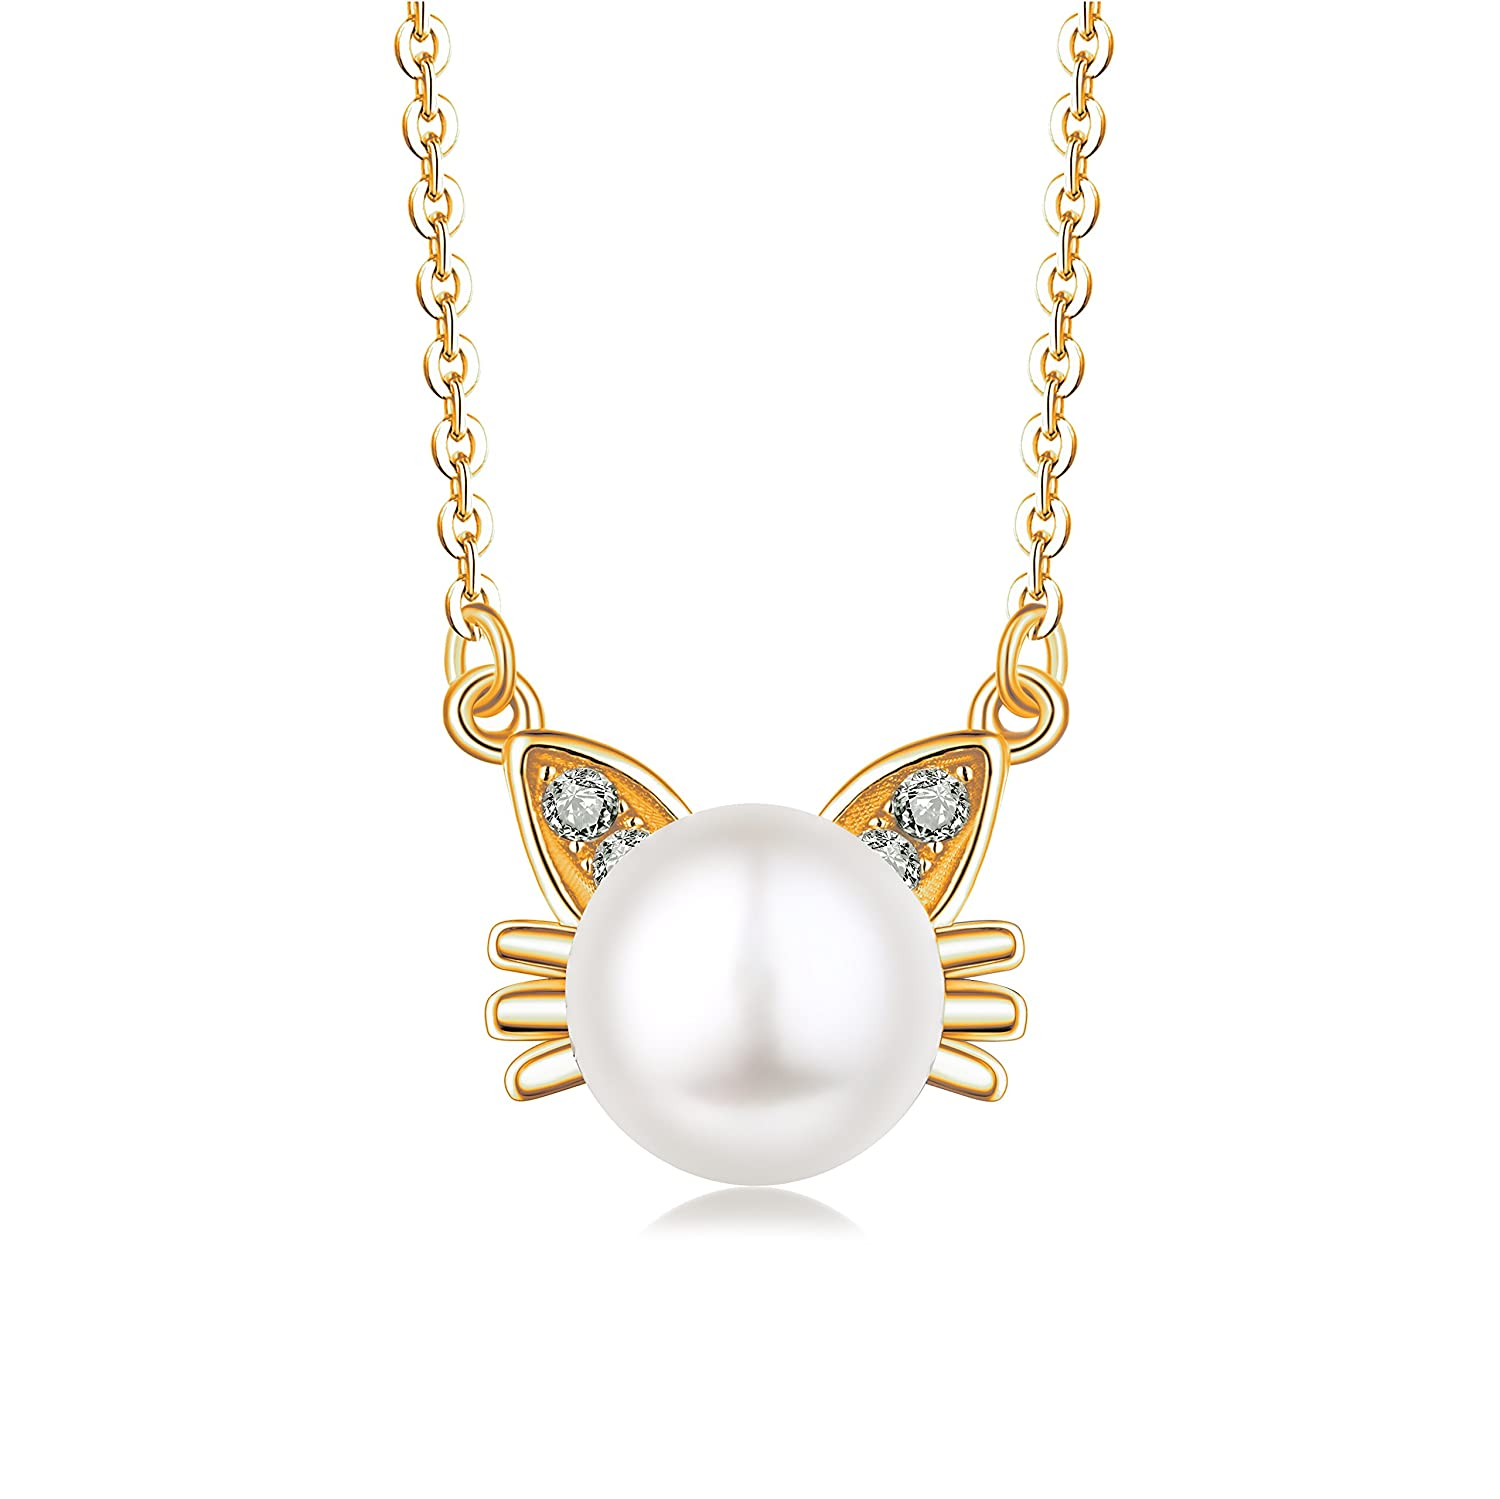 Sterling Silver Cat Pendant Necklace with Cubic Zirconia 9mm Cultured Freshwater Pearls Necklace, 18-20' 18-20 YH Jewelry YP39705A